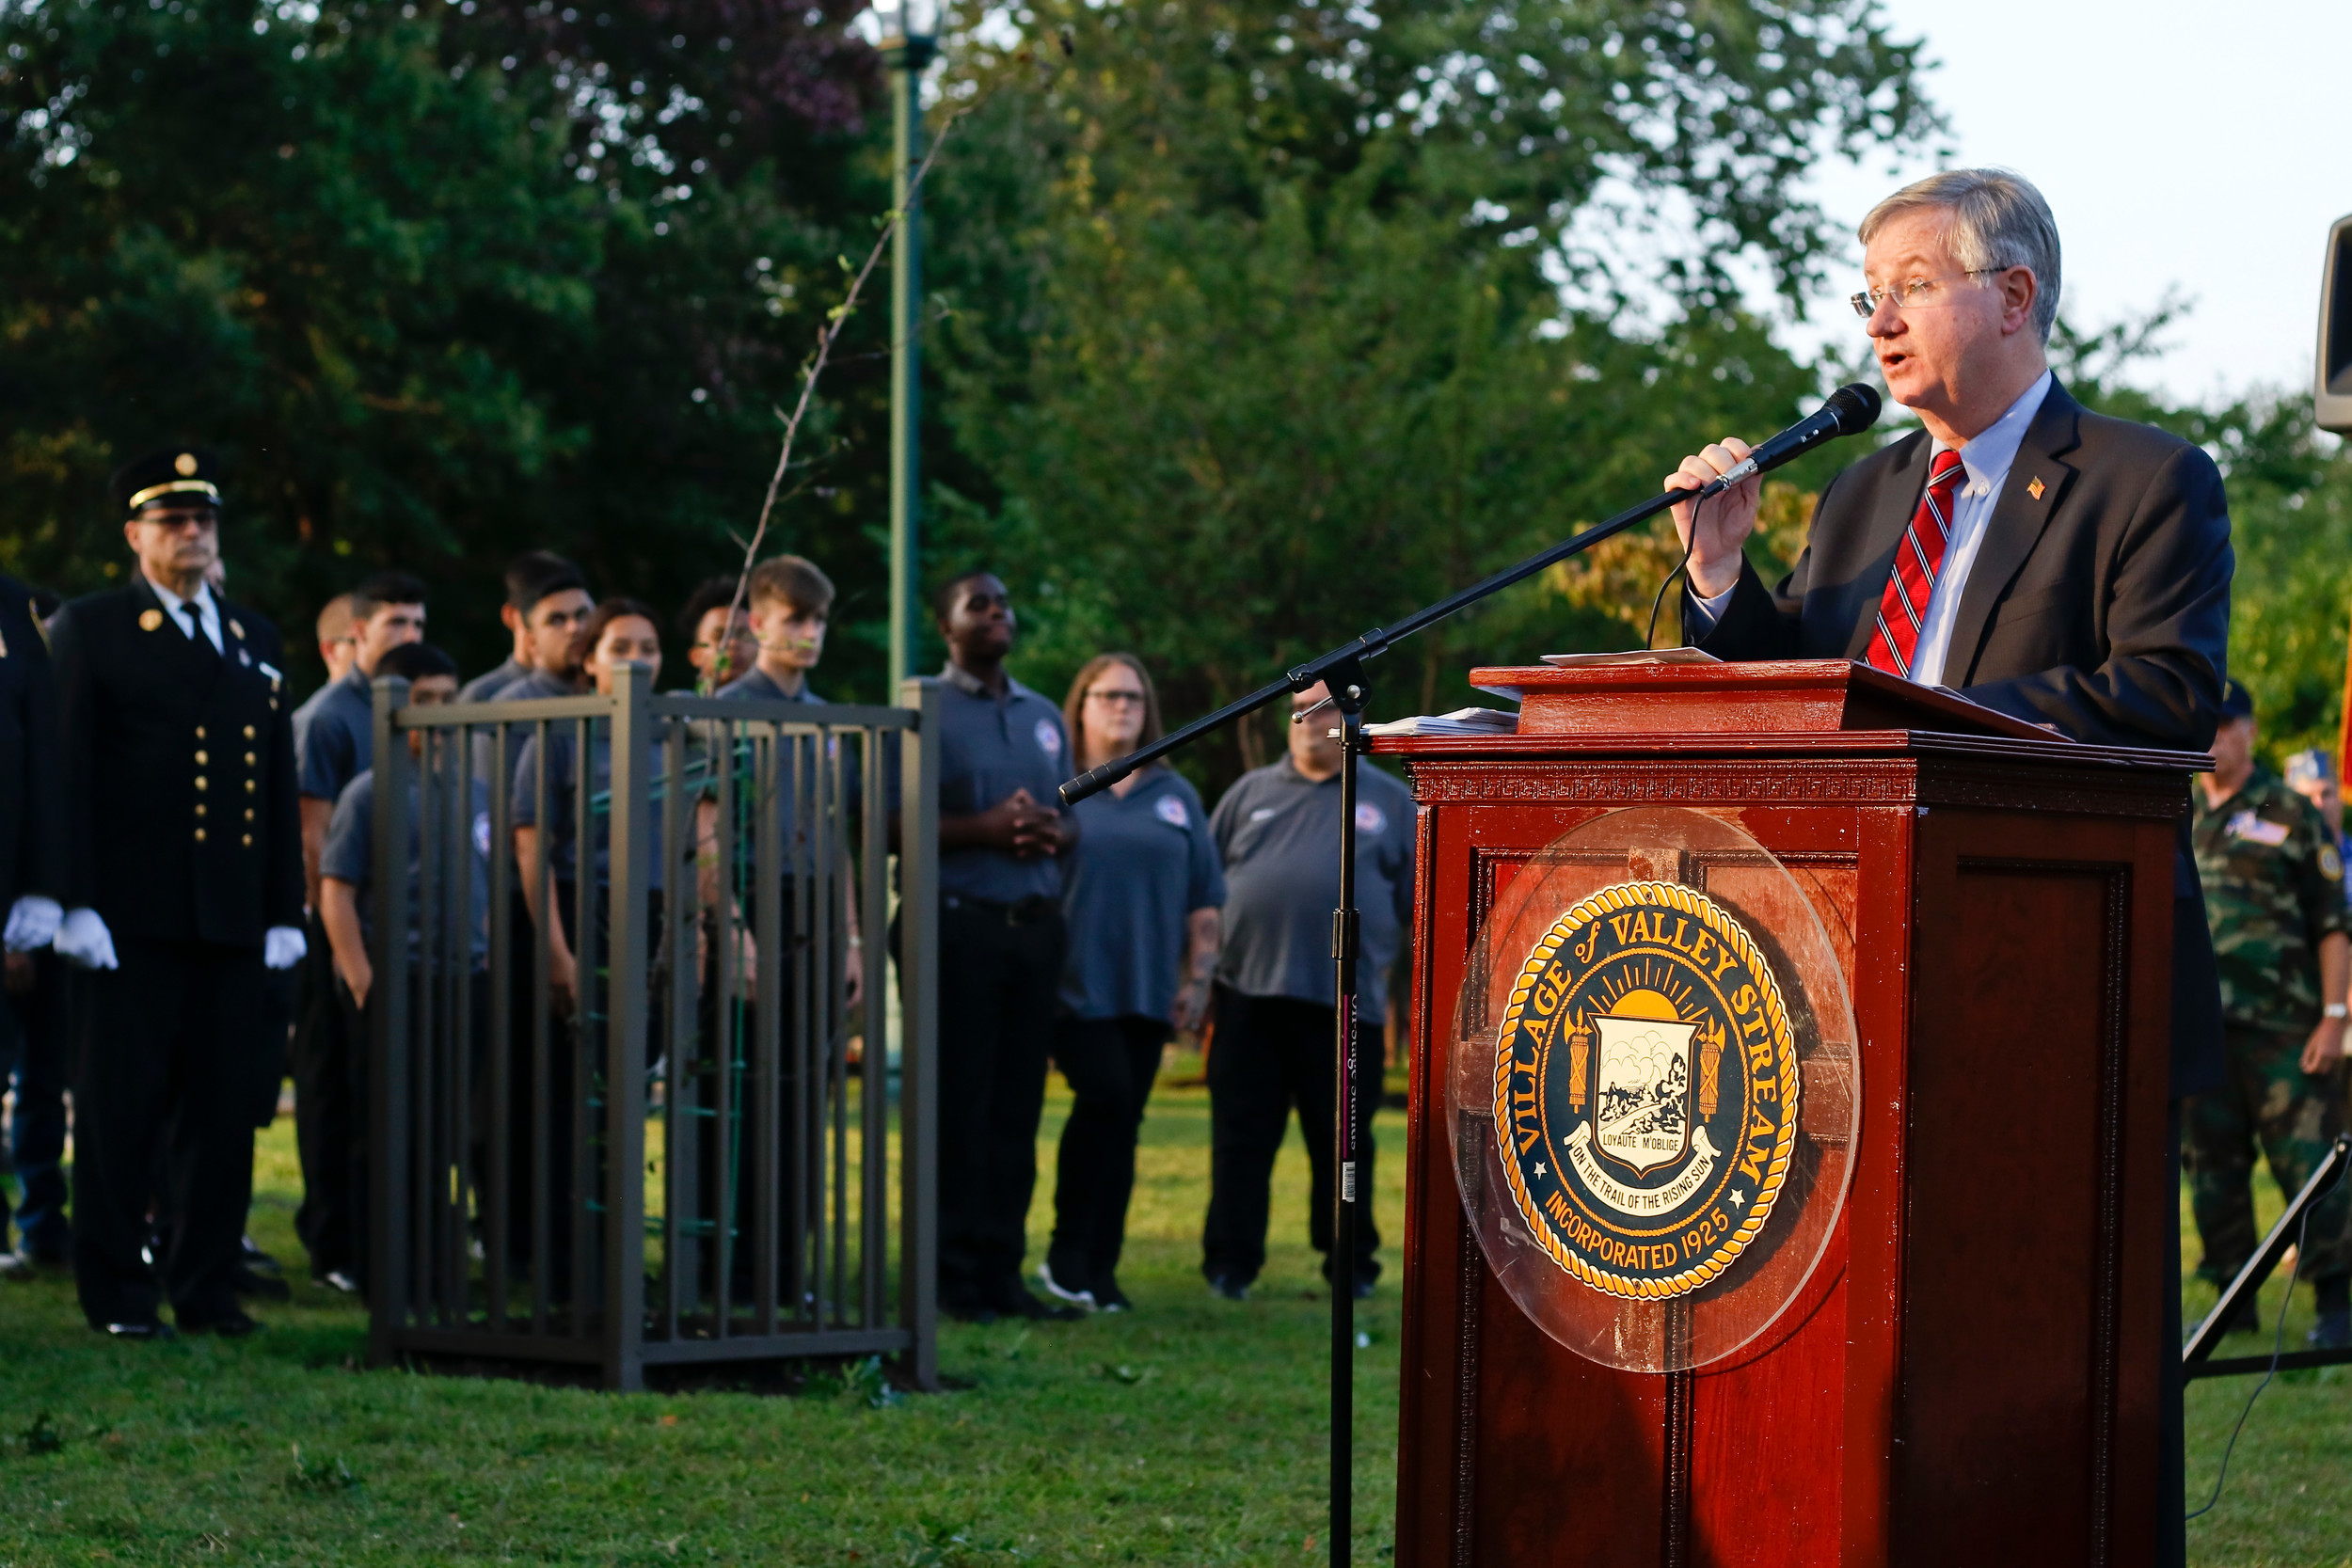 Master of Ceremonies, Jude Robert Bogle, addressed the gathered crowd of residents, fire fighters, veterans, boy scouts, girl scouts and local politicians who gathered for this years September 11 remembrance ceremony.